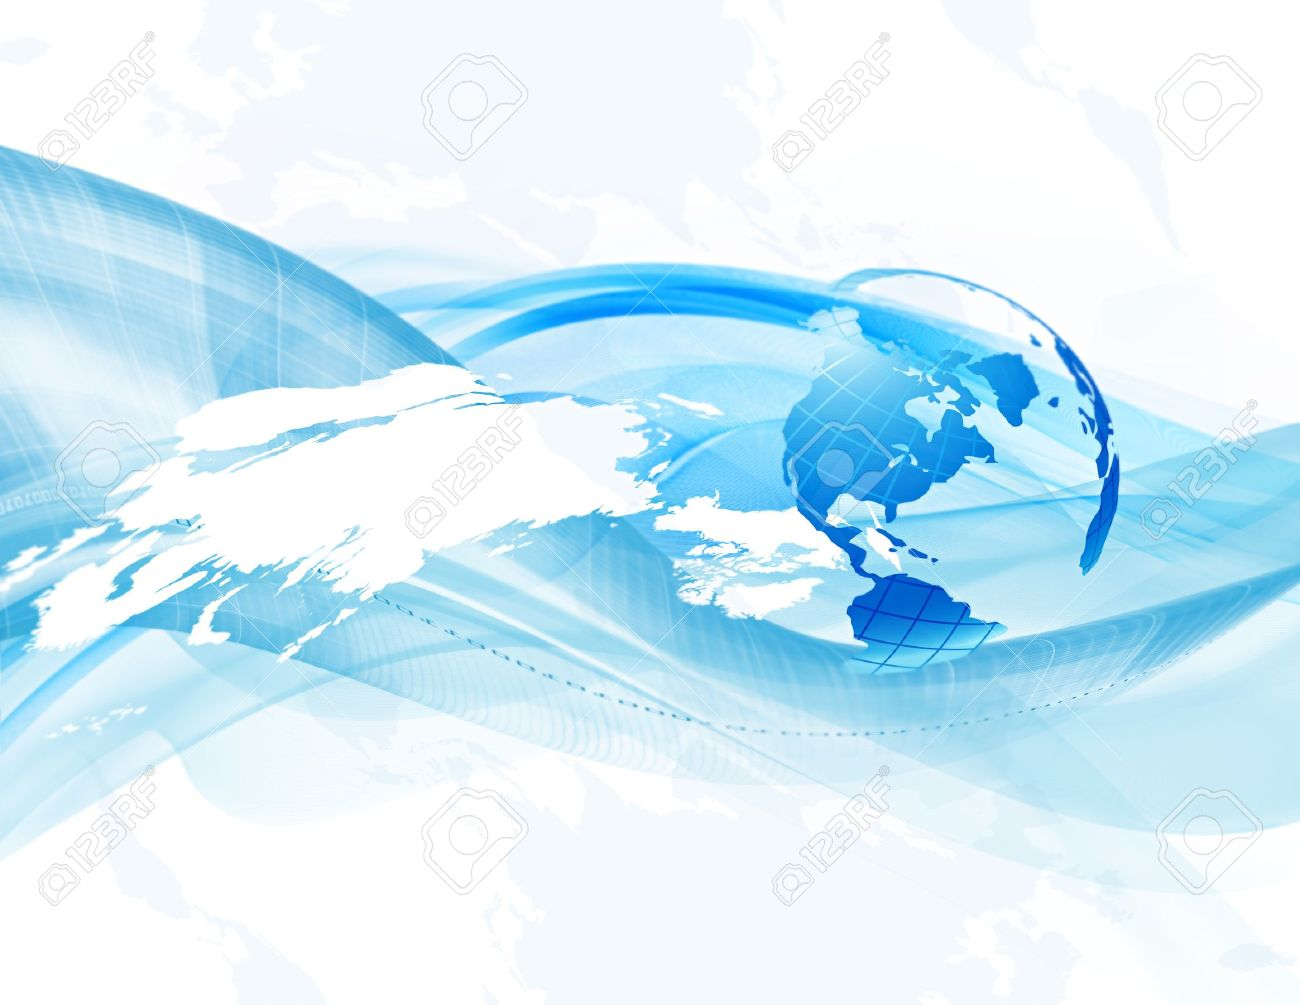 Abstract business background with globe and map (bitmap) - 10135458